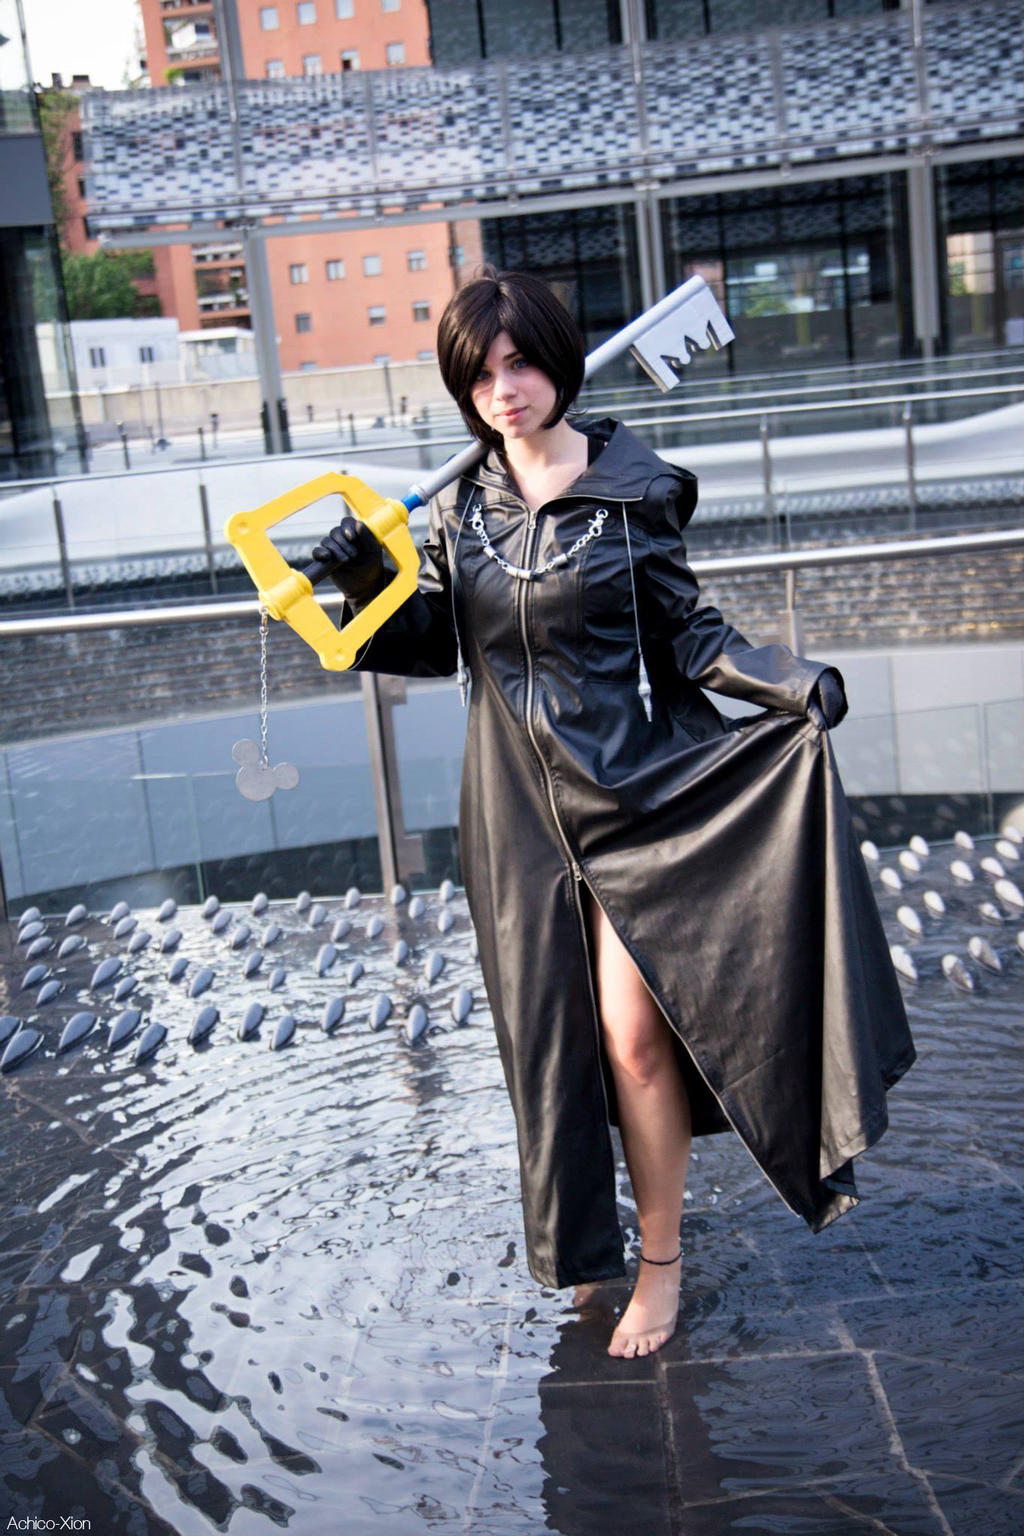 Xions Cosplay by Achico-Xion on DeviantArt